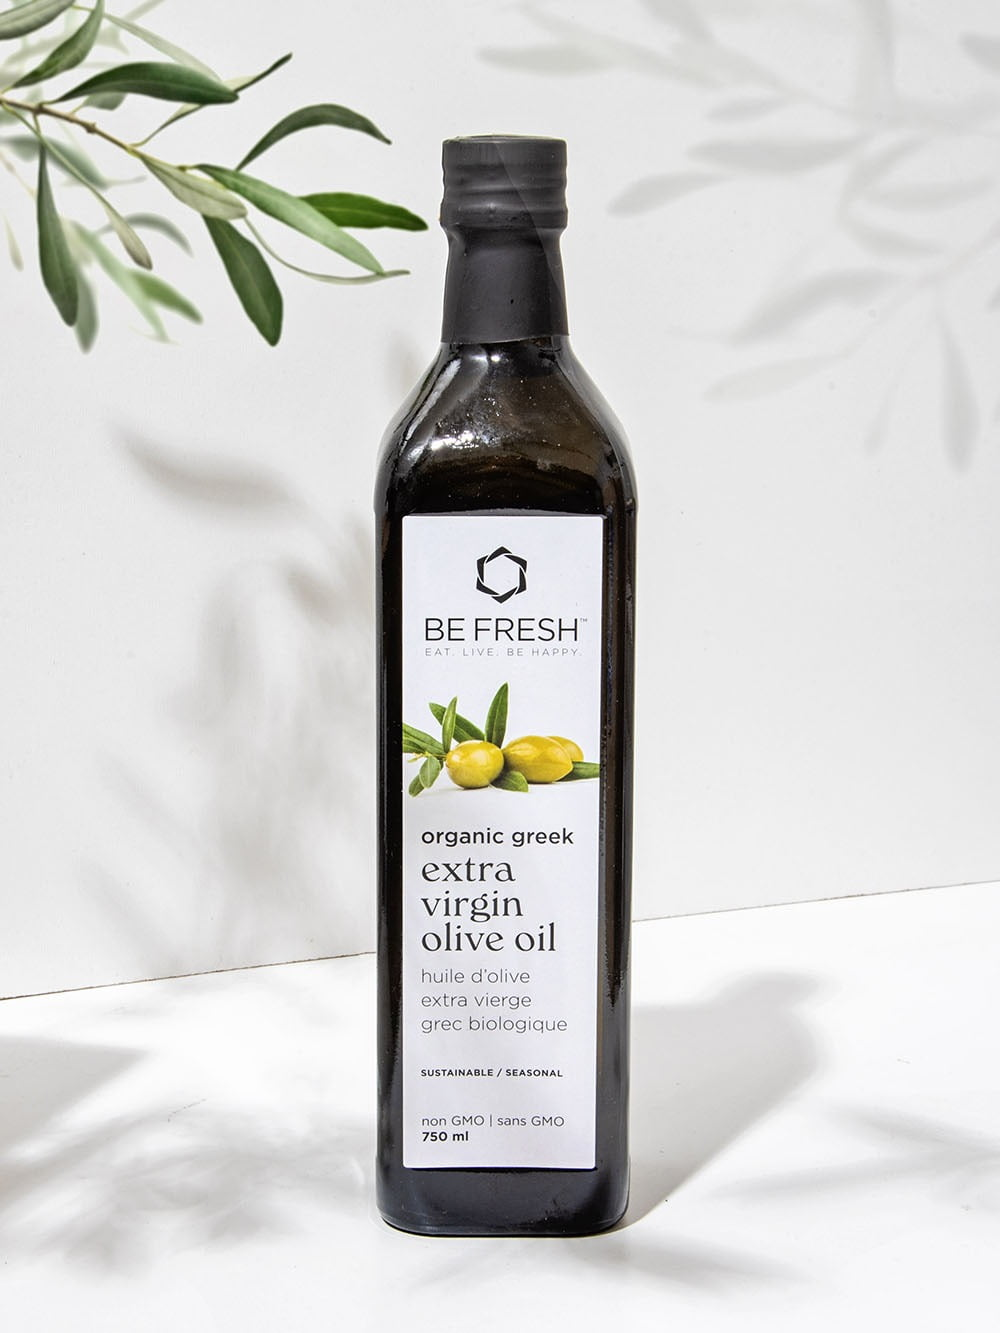 New Organic Greek Be Fresh Olive Oil